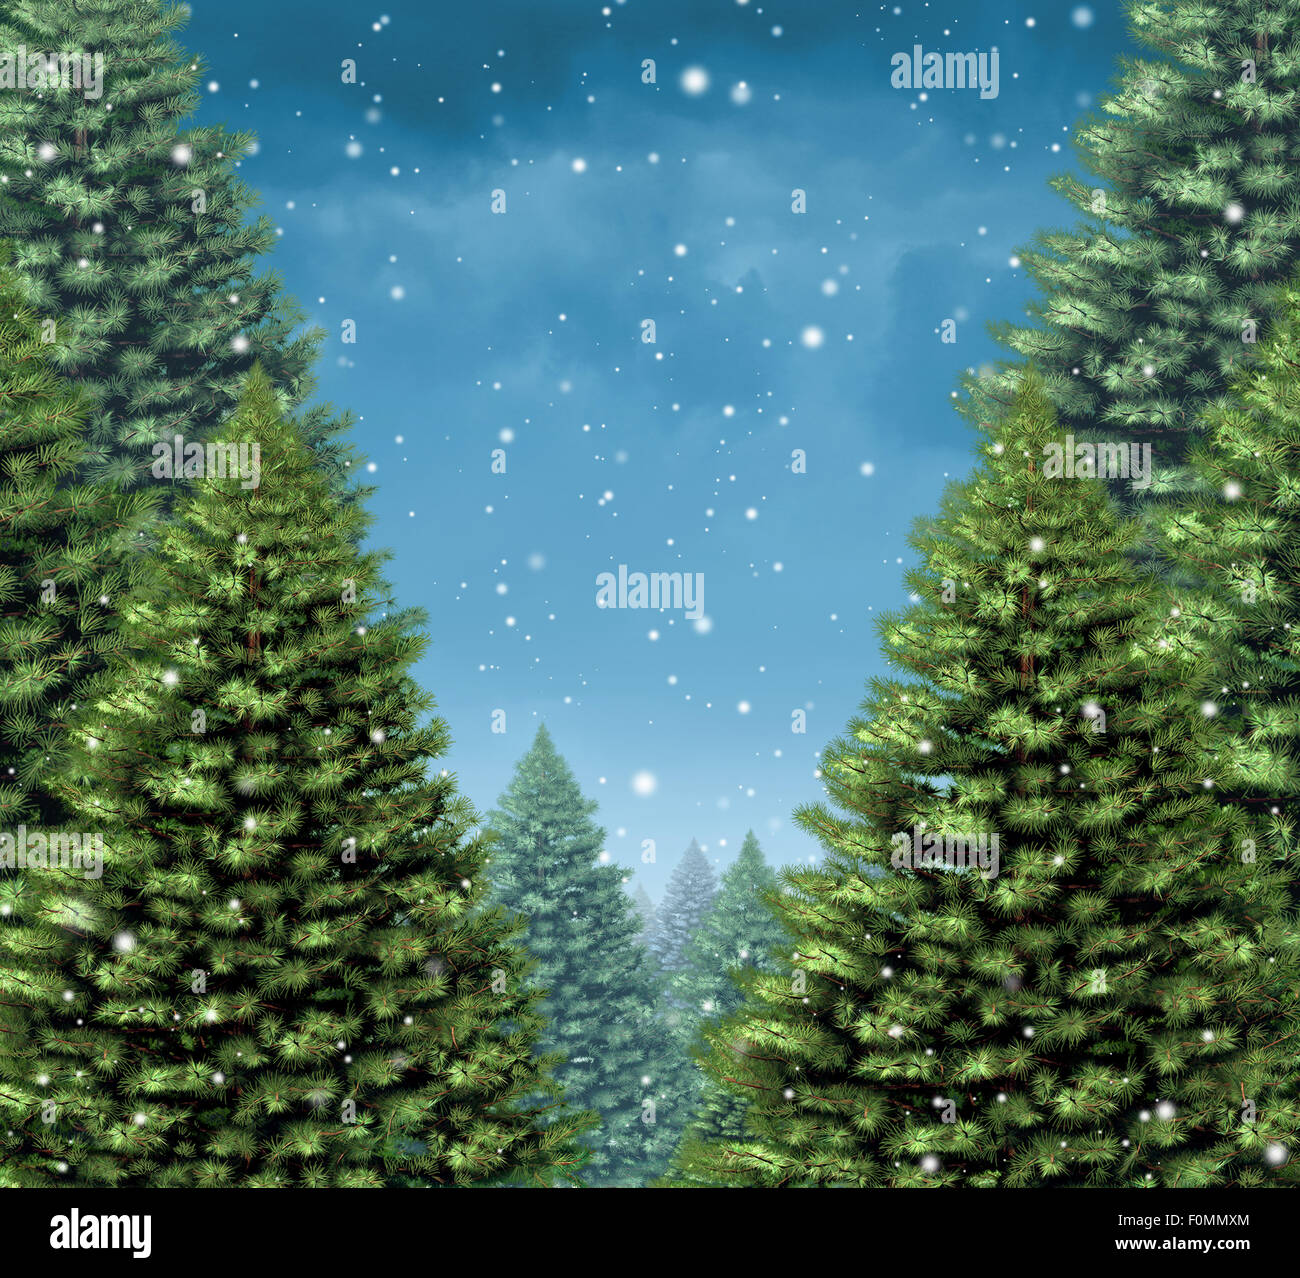 Winter tree background concept as a group of Christmas trees with snow flakes falling from a cold blue sky as a - Stock Image